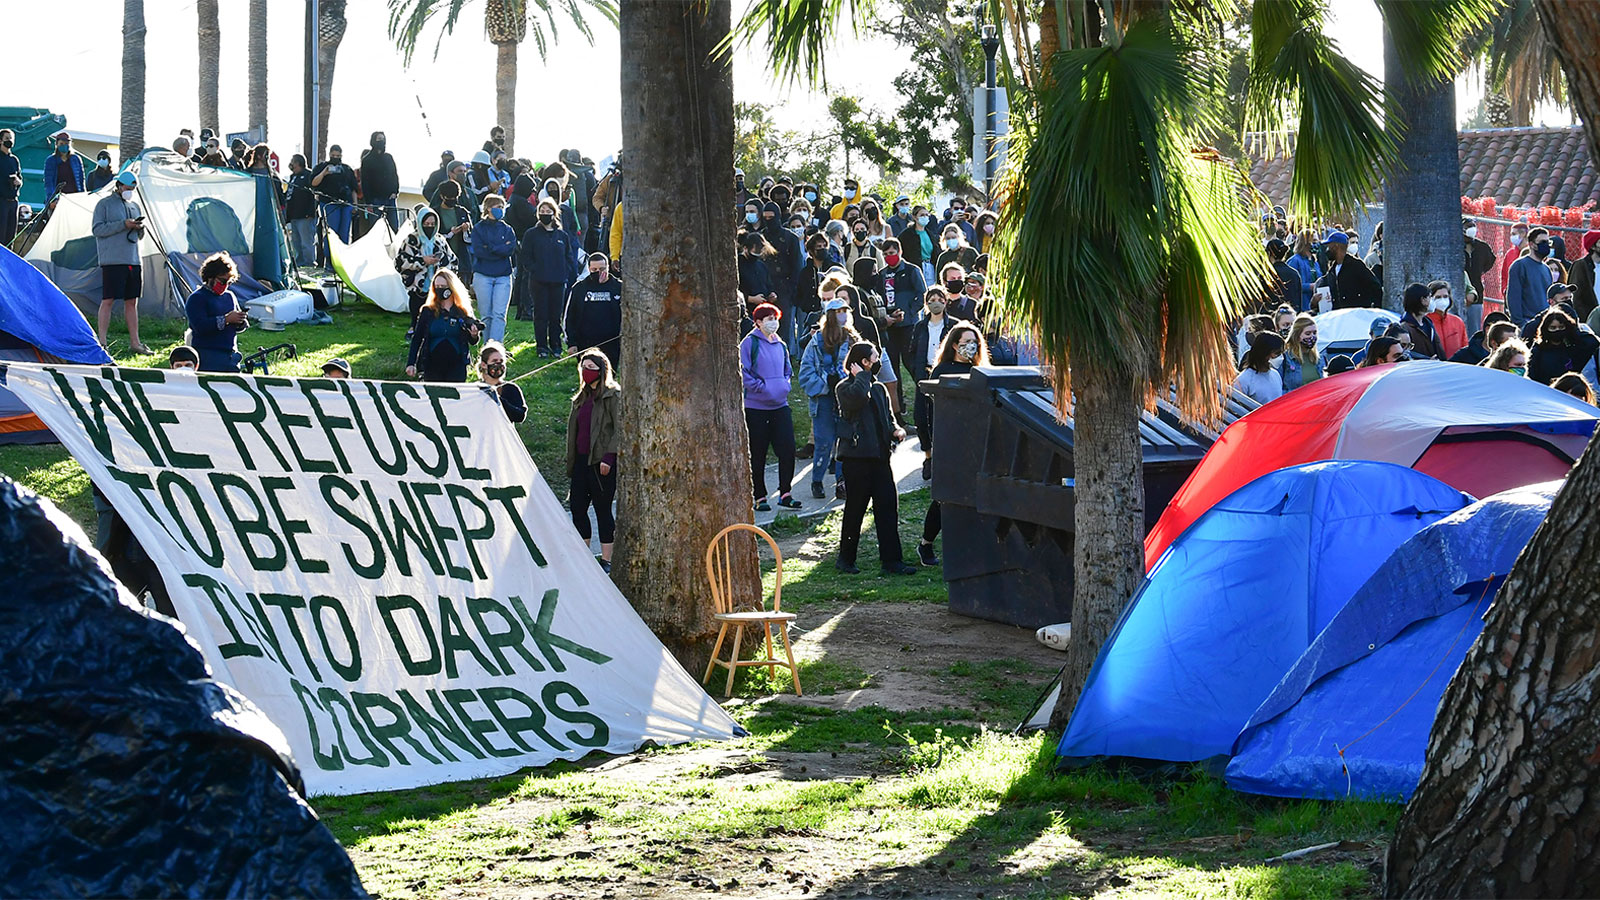 Social activists, homeless residents, and supporters rally at the start of a 24-hour vigil to block a planned shutdown of a homeless encampment at Echo Lake Park in Los Angeles